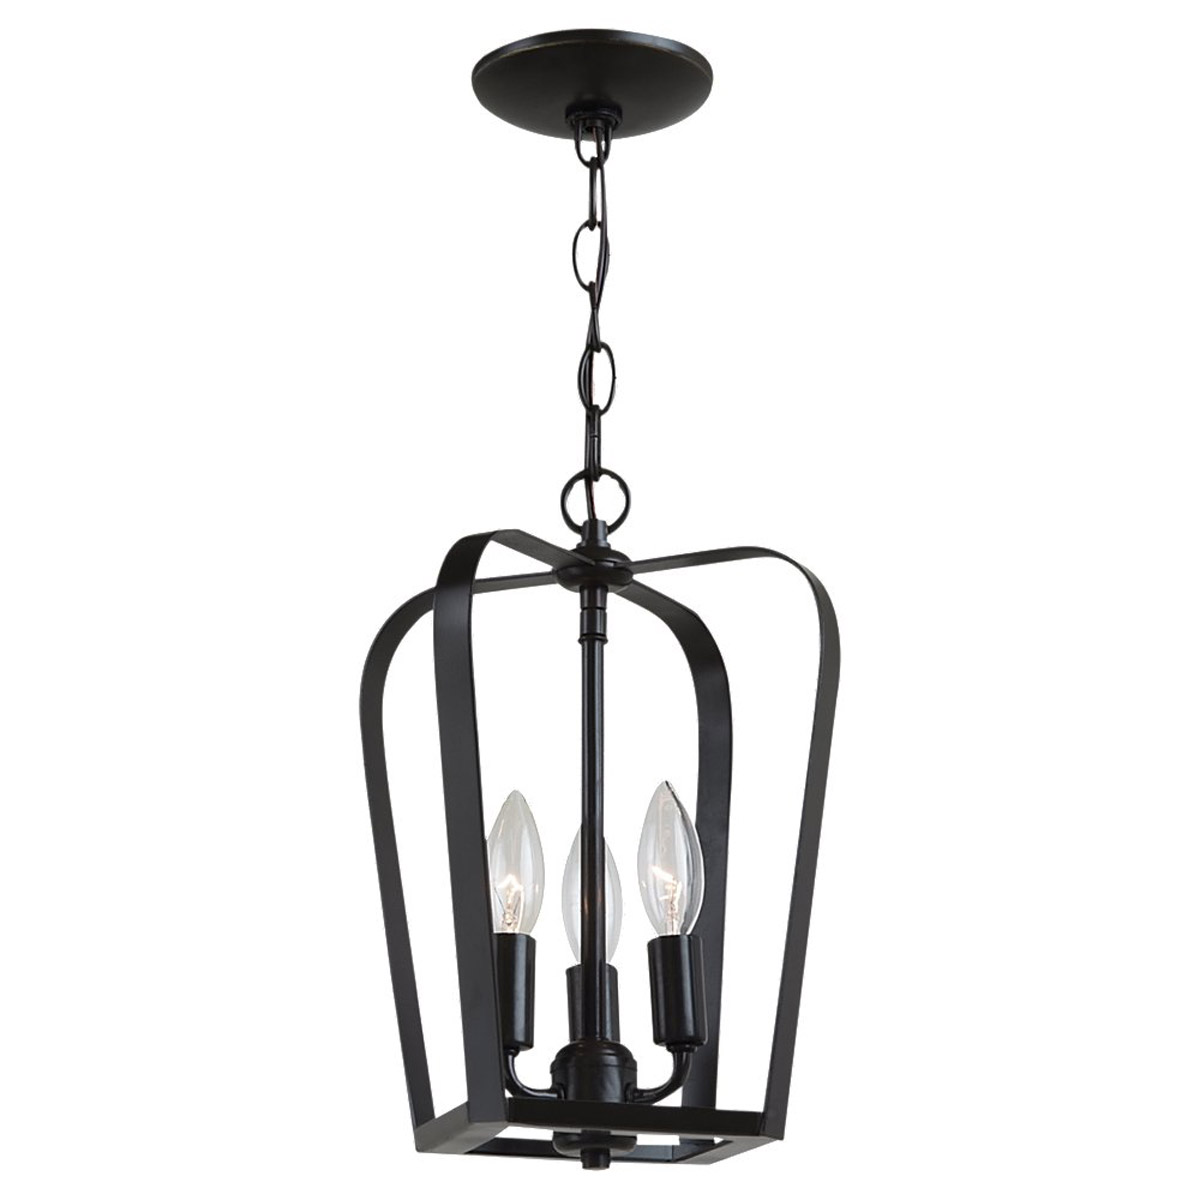 Sea Gull Lighting Windgate 3 Light Foyer Pendant in Heirloom Bronze 54940-782 photo